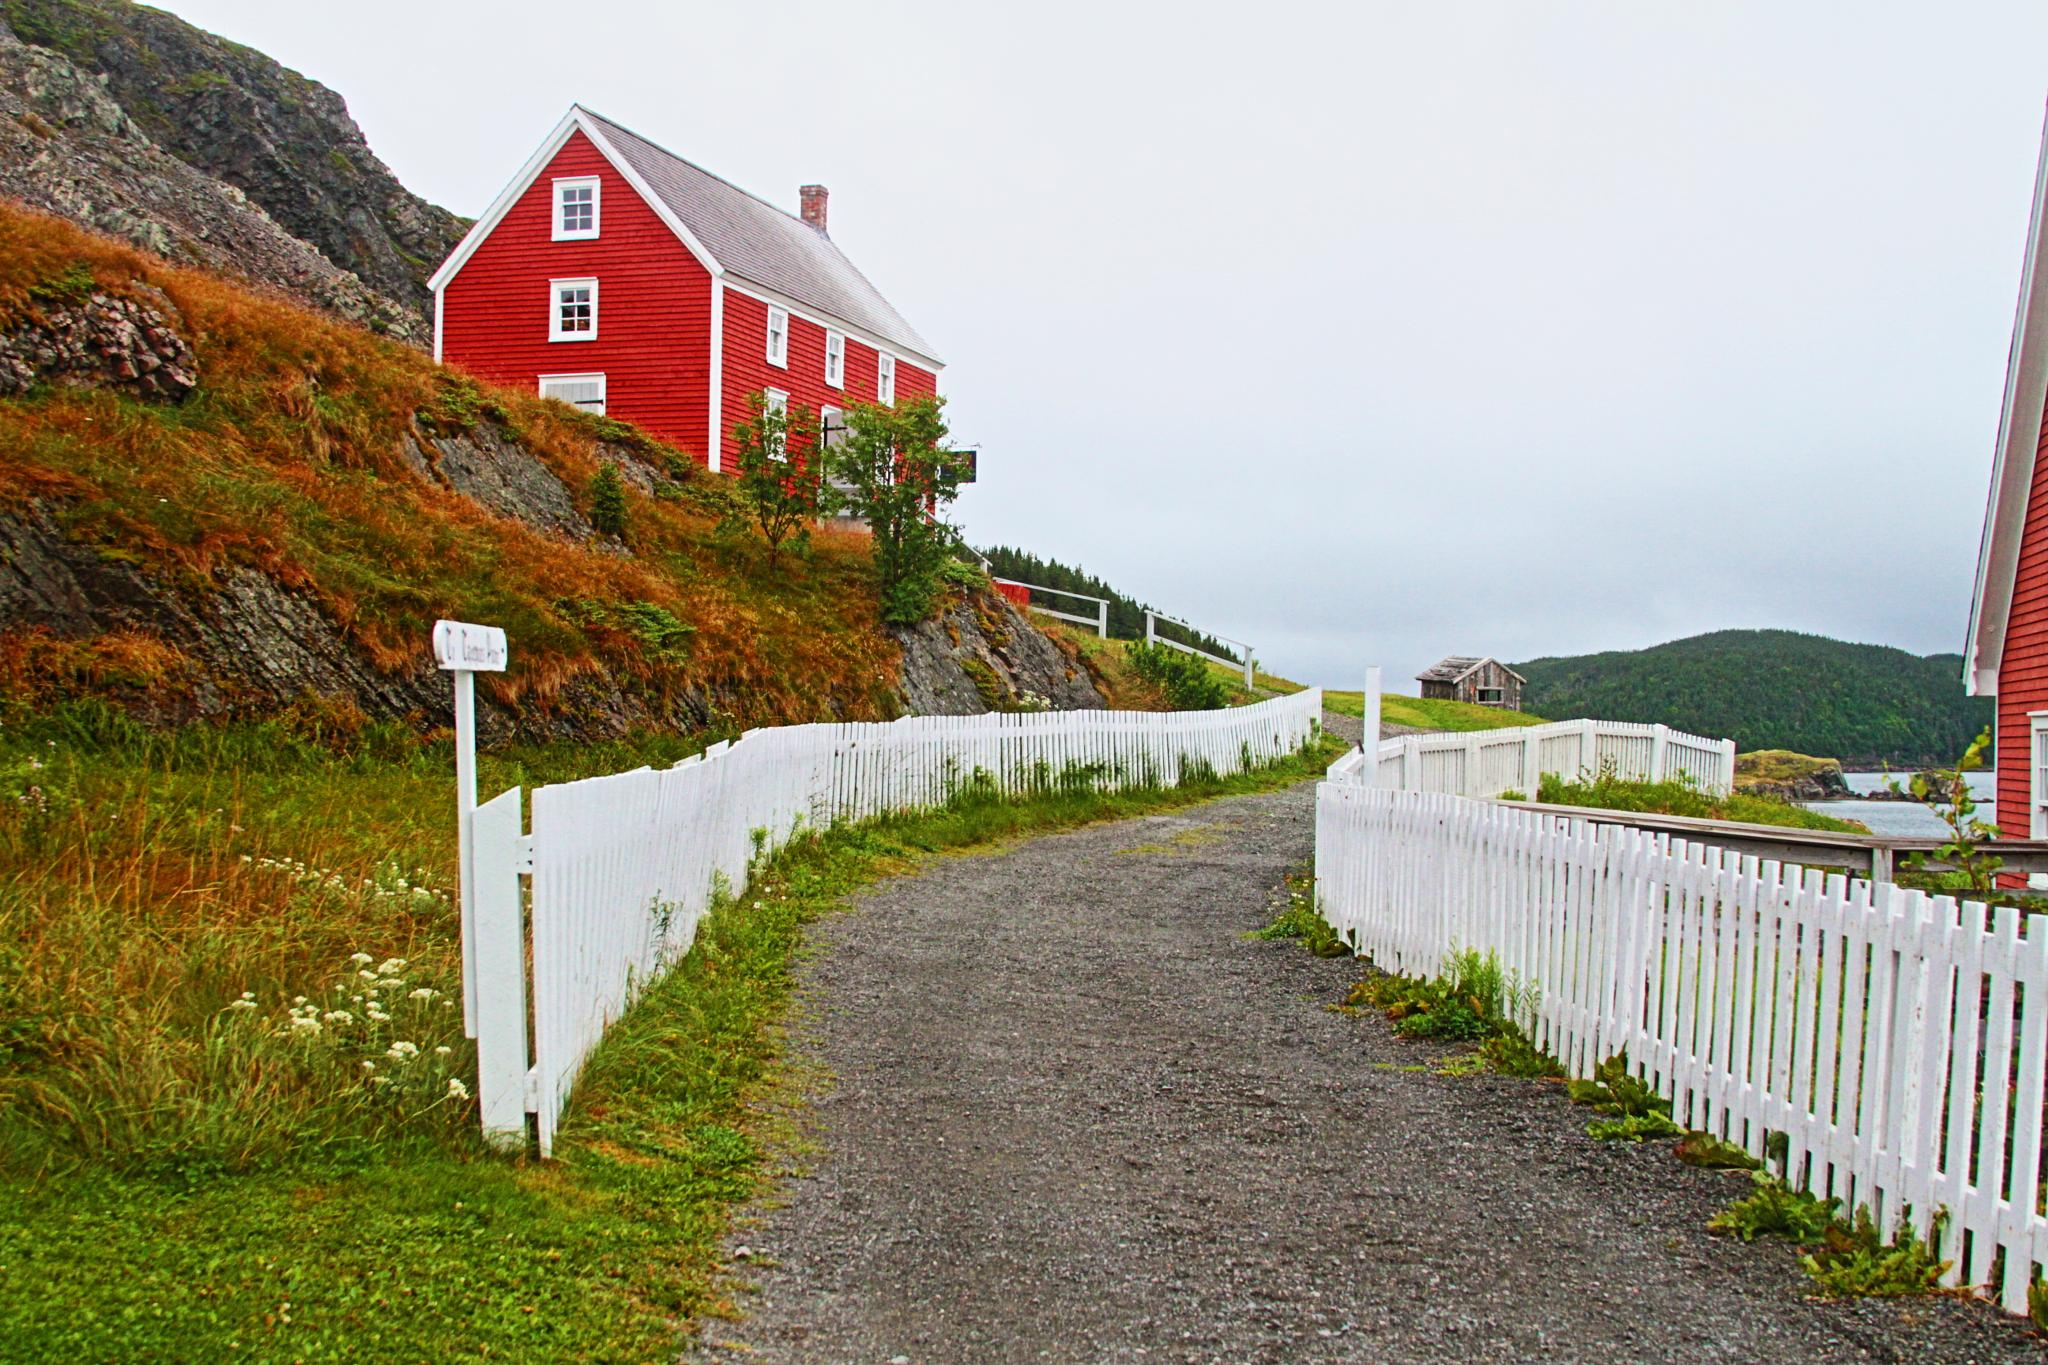 Lane to red house by Robert Pelletier